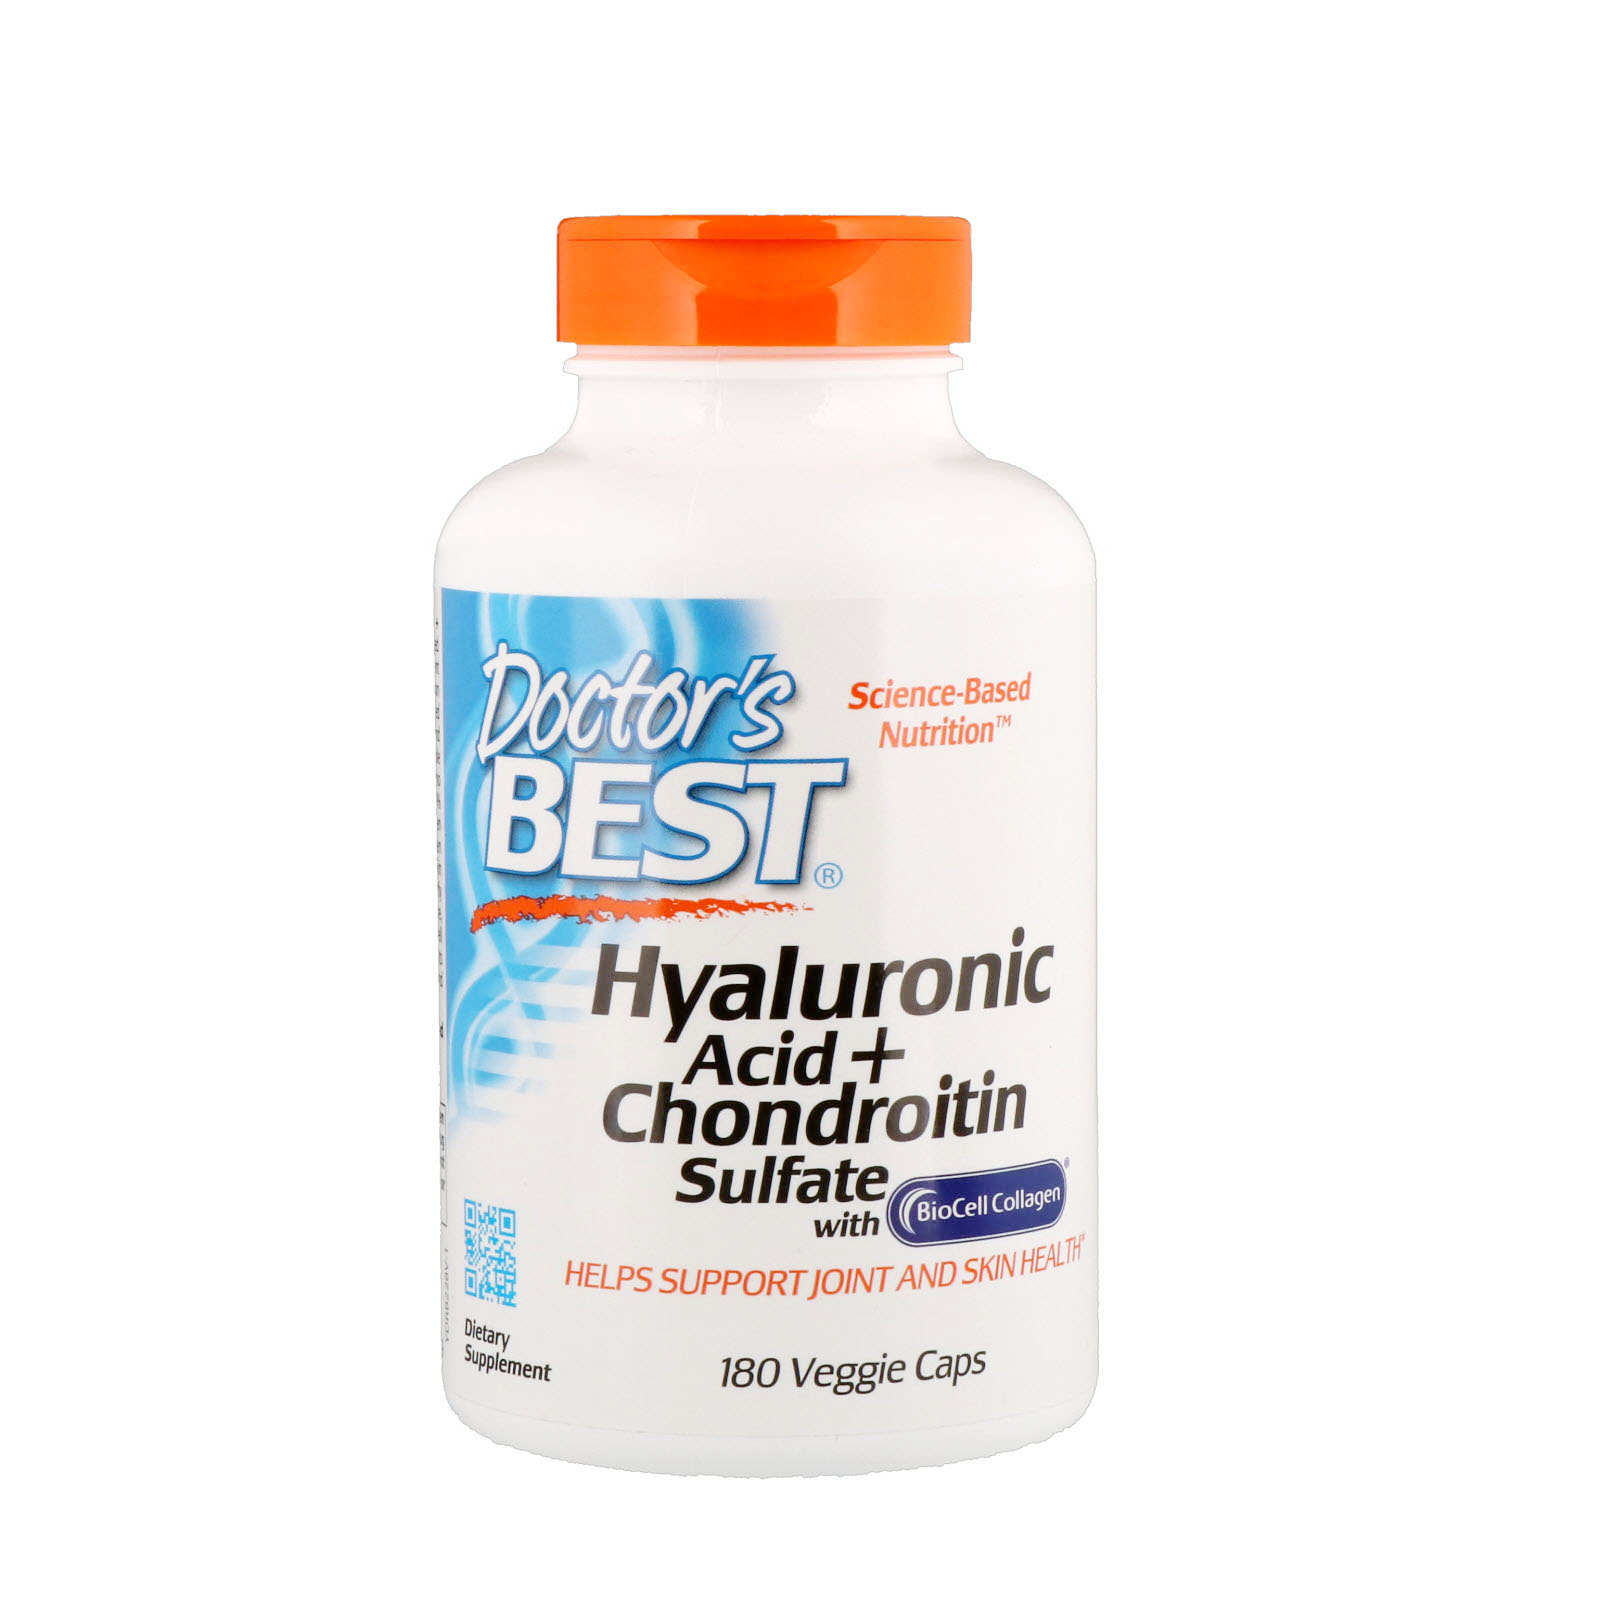 Best hyaluronic acid supplement